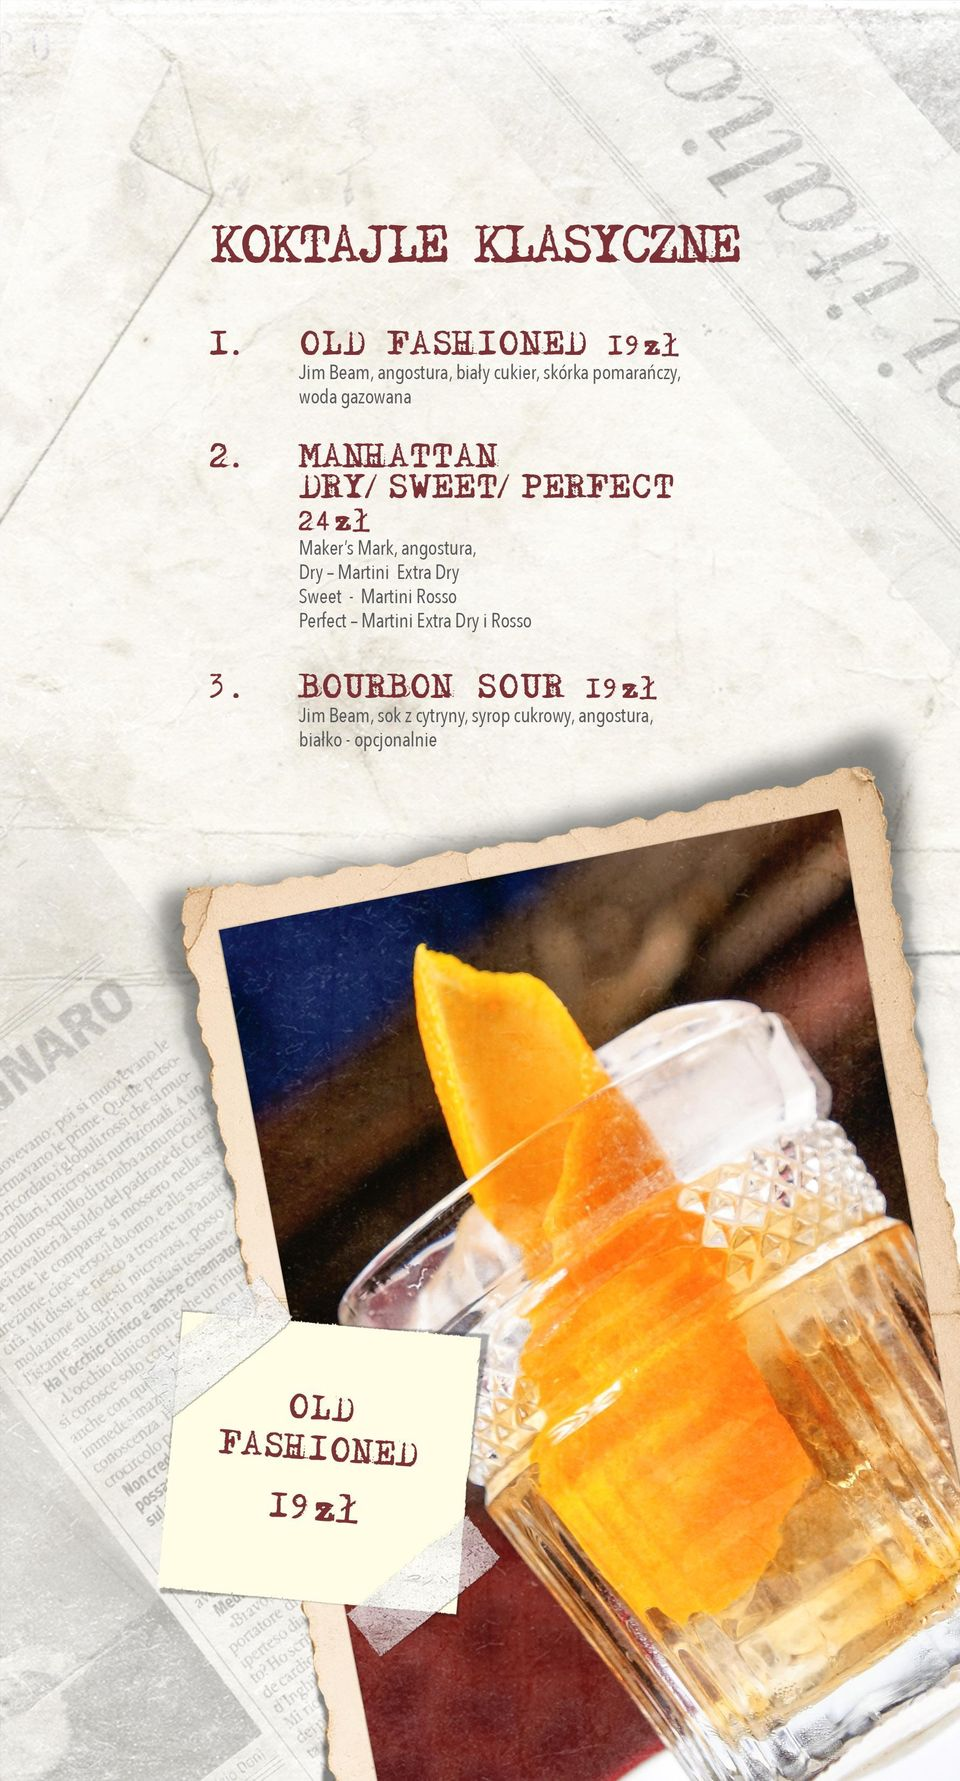 MANHATTAN DRY/SWEET/PERFECT 24zł Maker s Mark, angostura, Dry Martini Extra Dry Sweet -